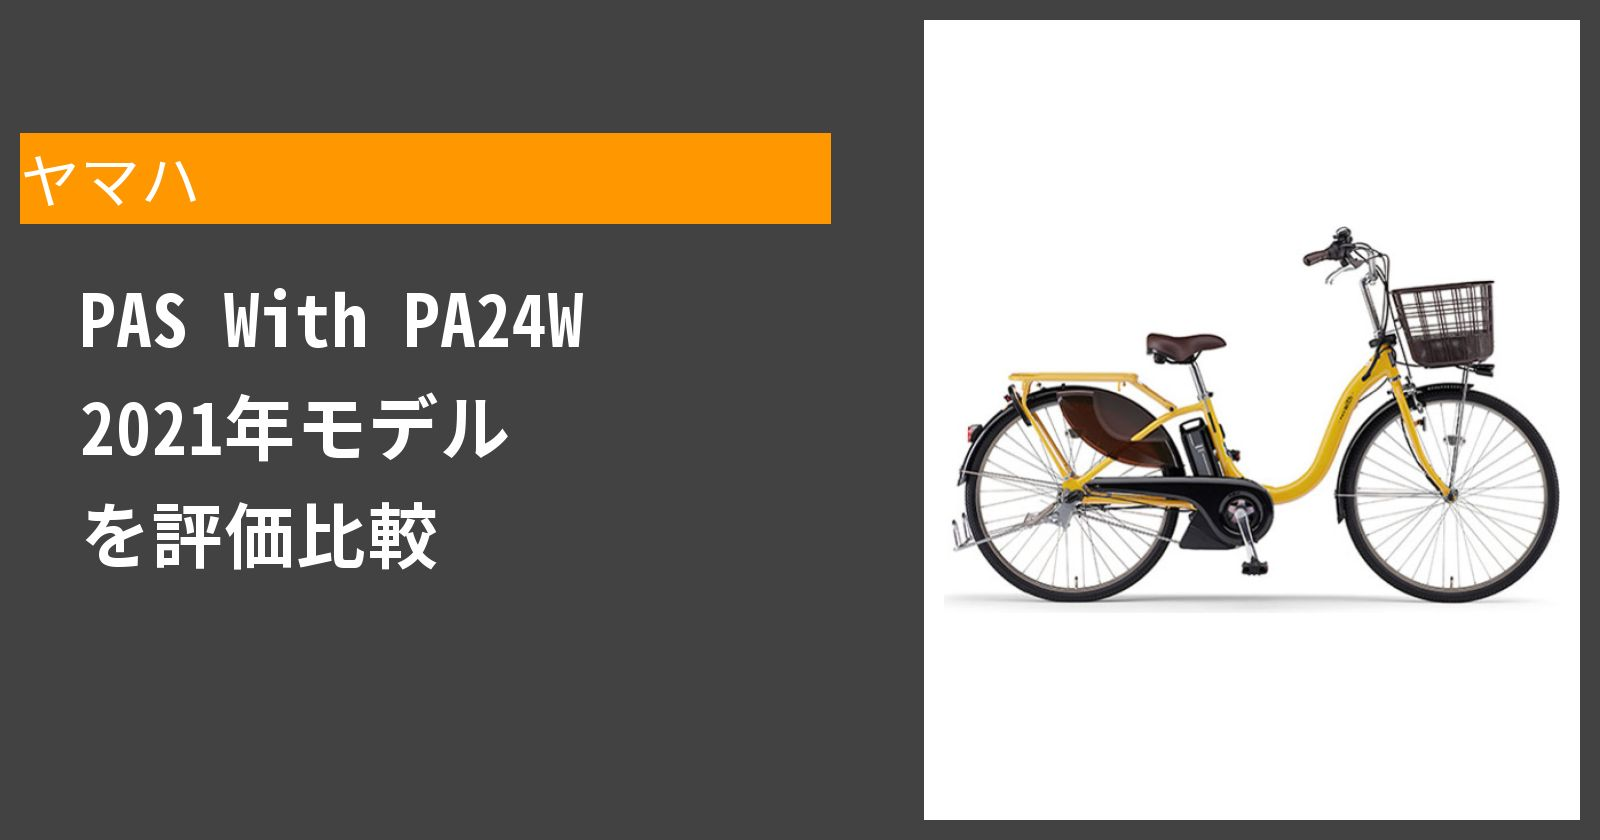 PAS With PA24W 2021年モデルを徹底評価